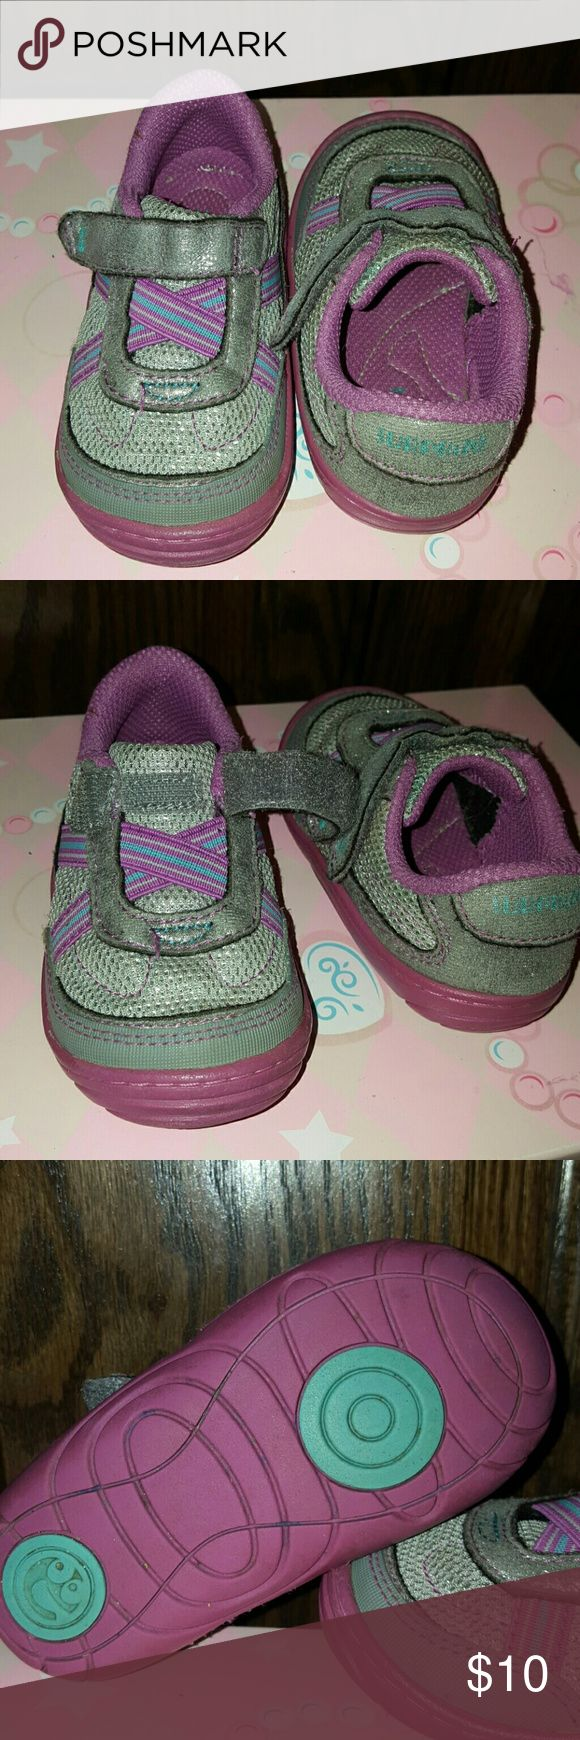 🎀 Baby Girl, sz. 5, Tennis Shoes 🎀 Very good condition, sz. 5, purple and silver baby girl tennis shoes! Purple & turquoise elastic crisscrosses over tongue and they close w/ a velcro strap! These are great shoes!!! Surprize Shoes Sneakers